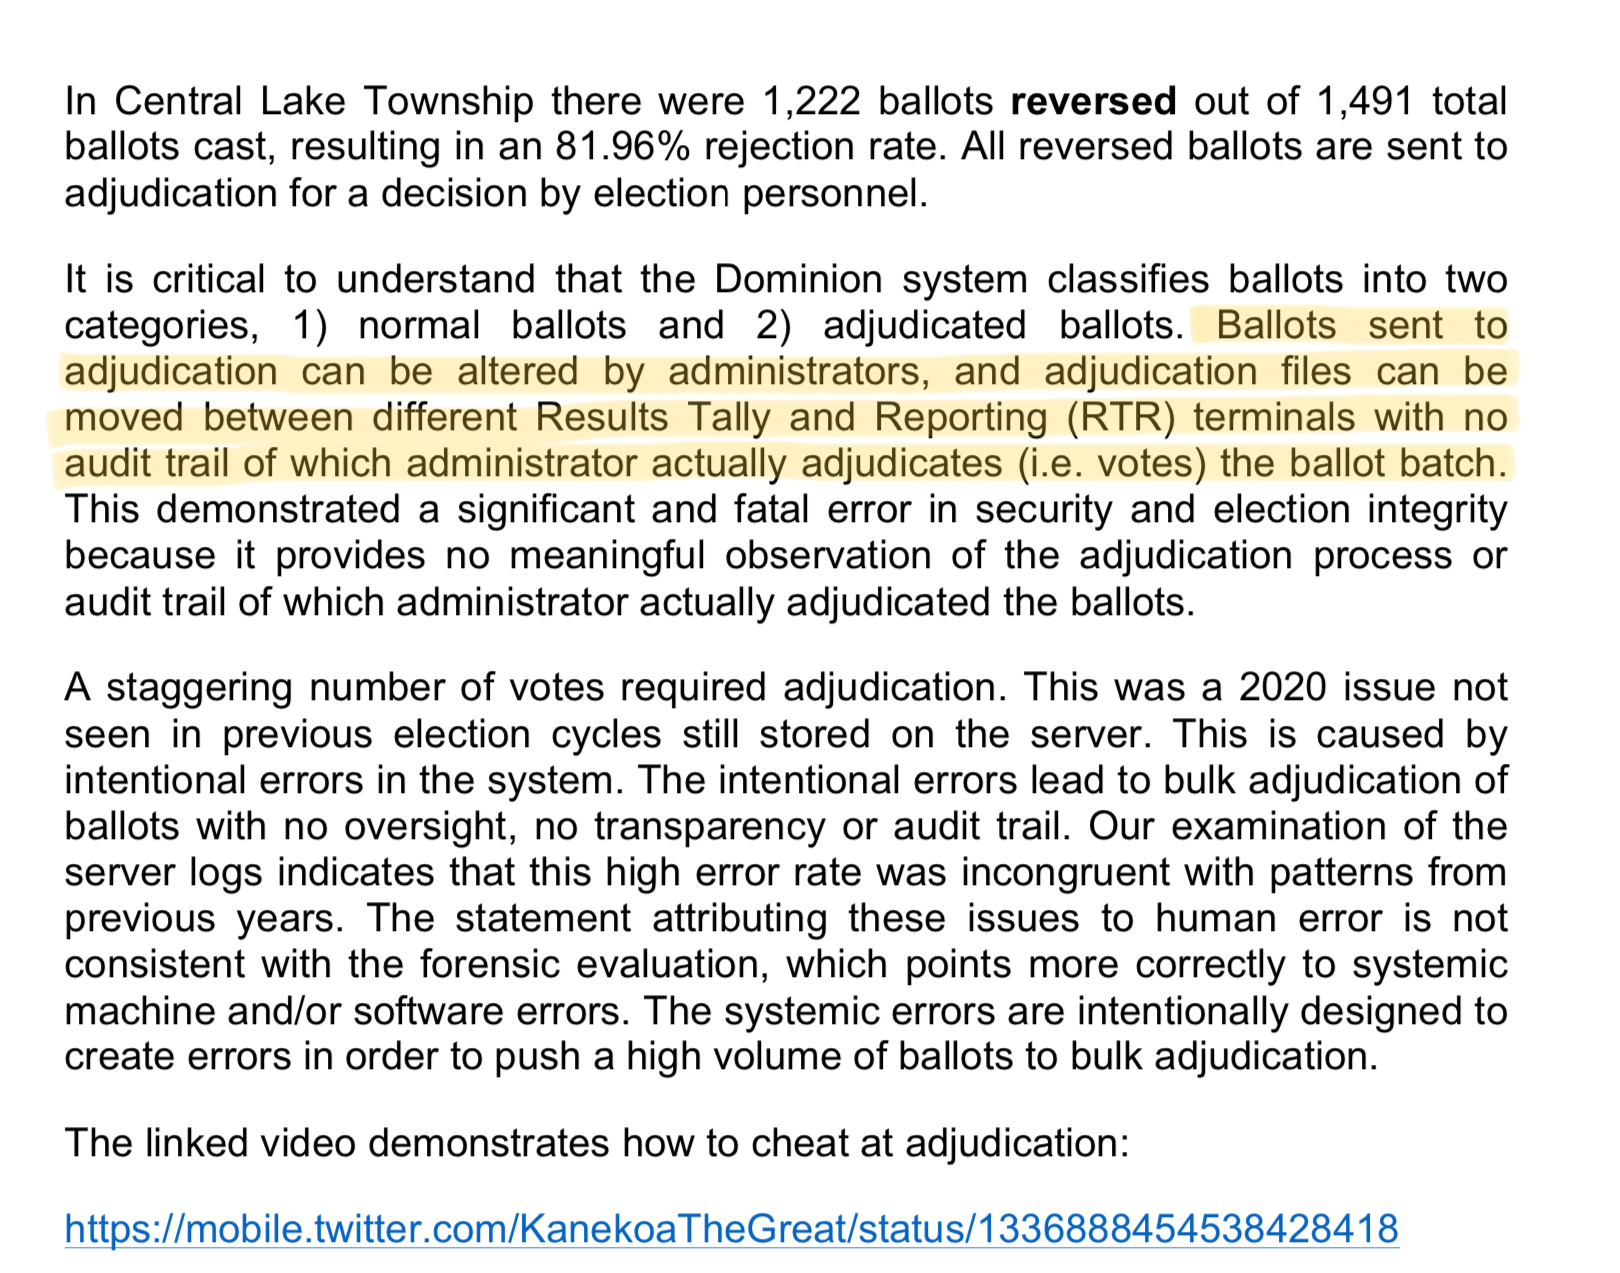 Dominion Voting example of cheating from Central Lake Township...